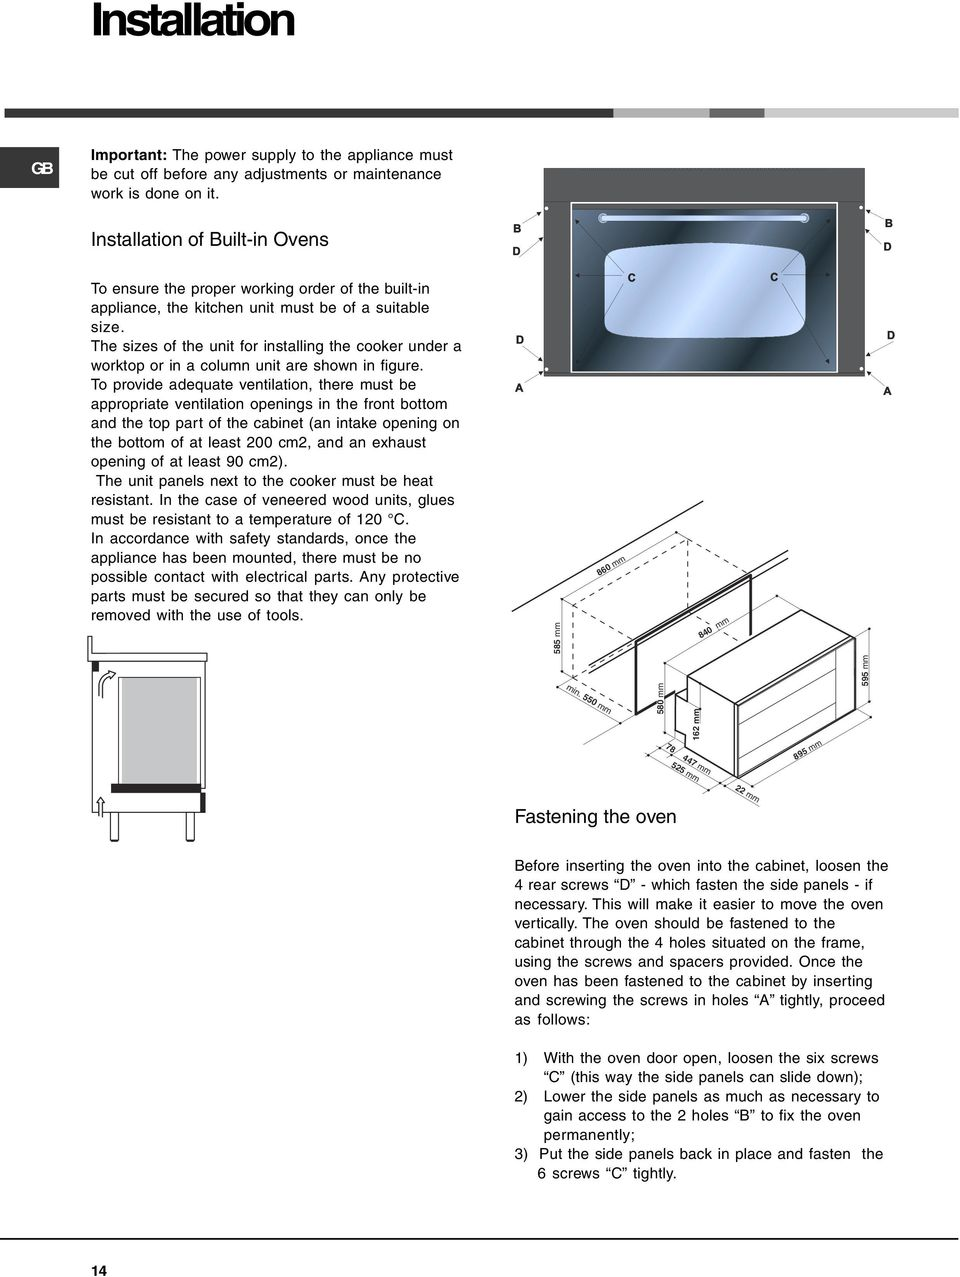 The sizes of the unit for installing the cooker under a worktop or in a column unit are shown in figure.